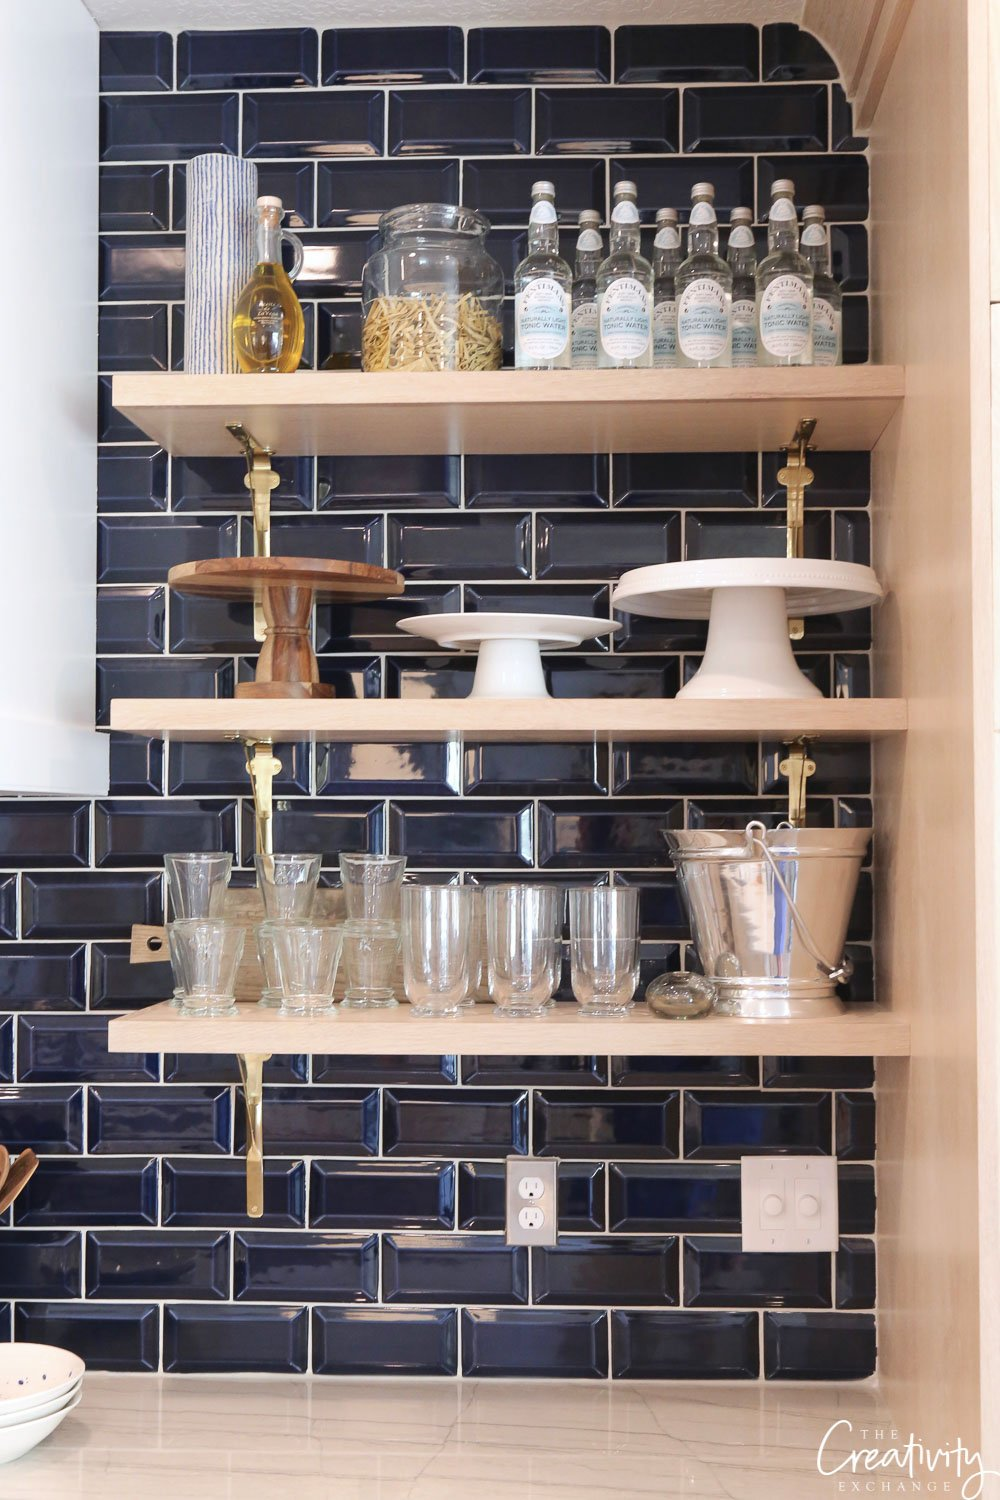 Navy kitchen tile backsplash and open shelving.